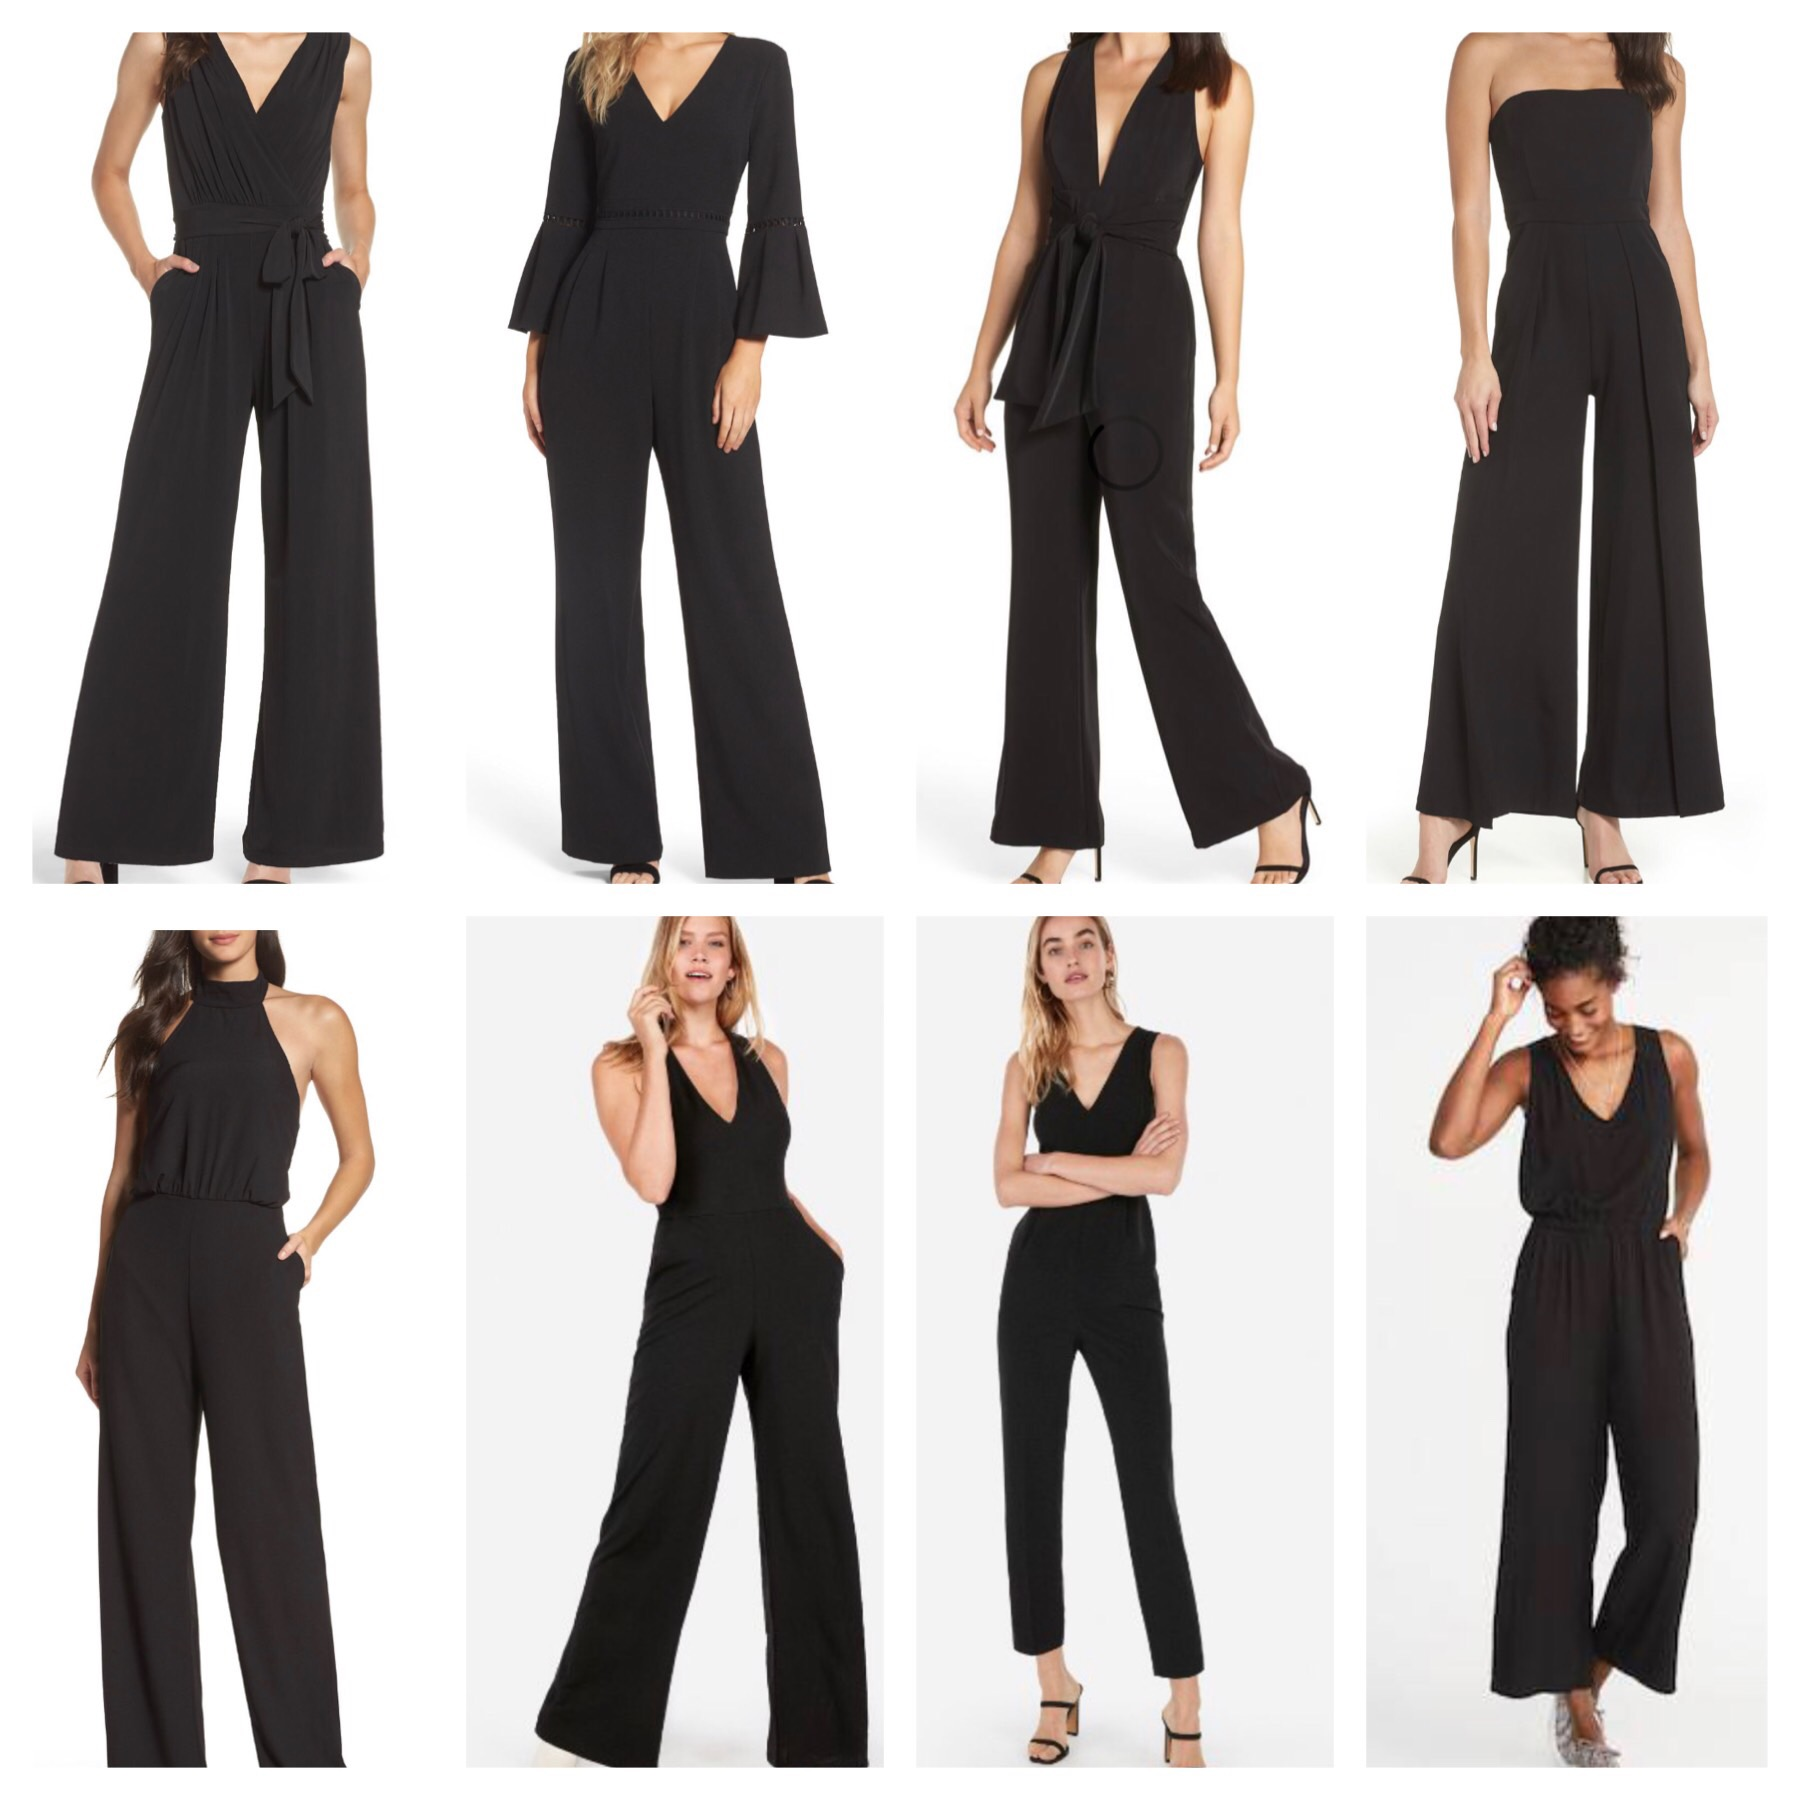 Best Black Jumpsuits for less than $100